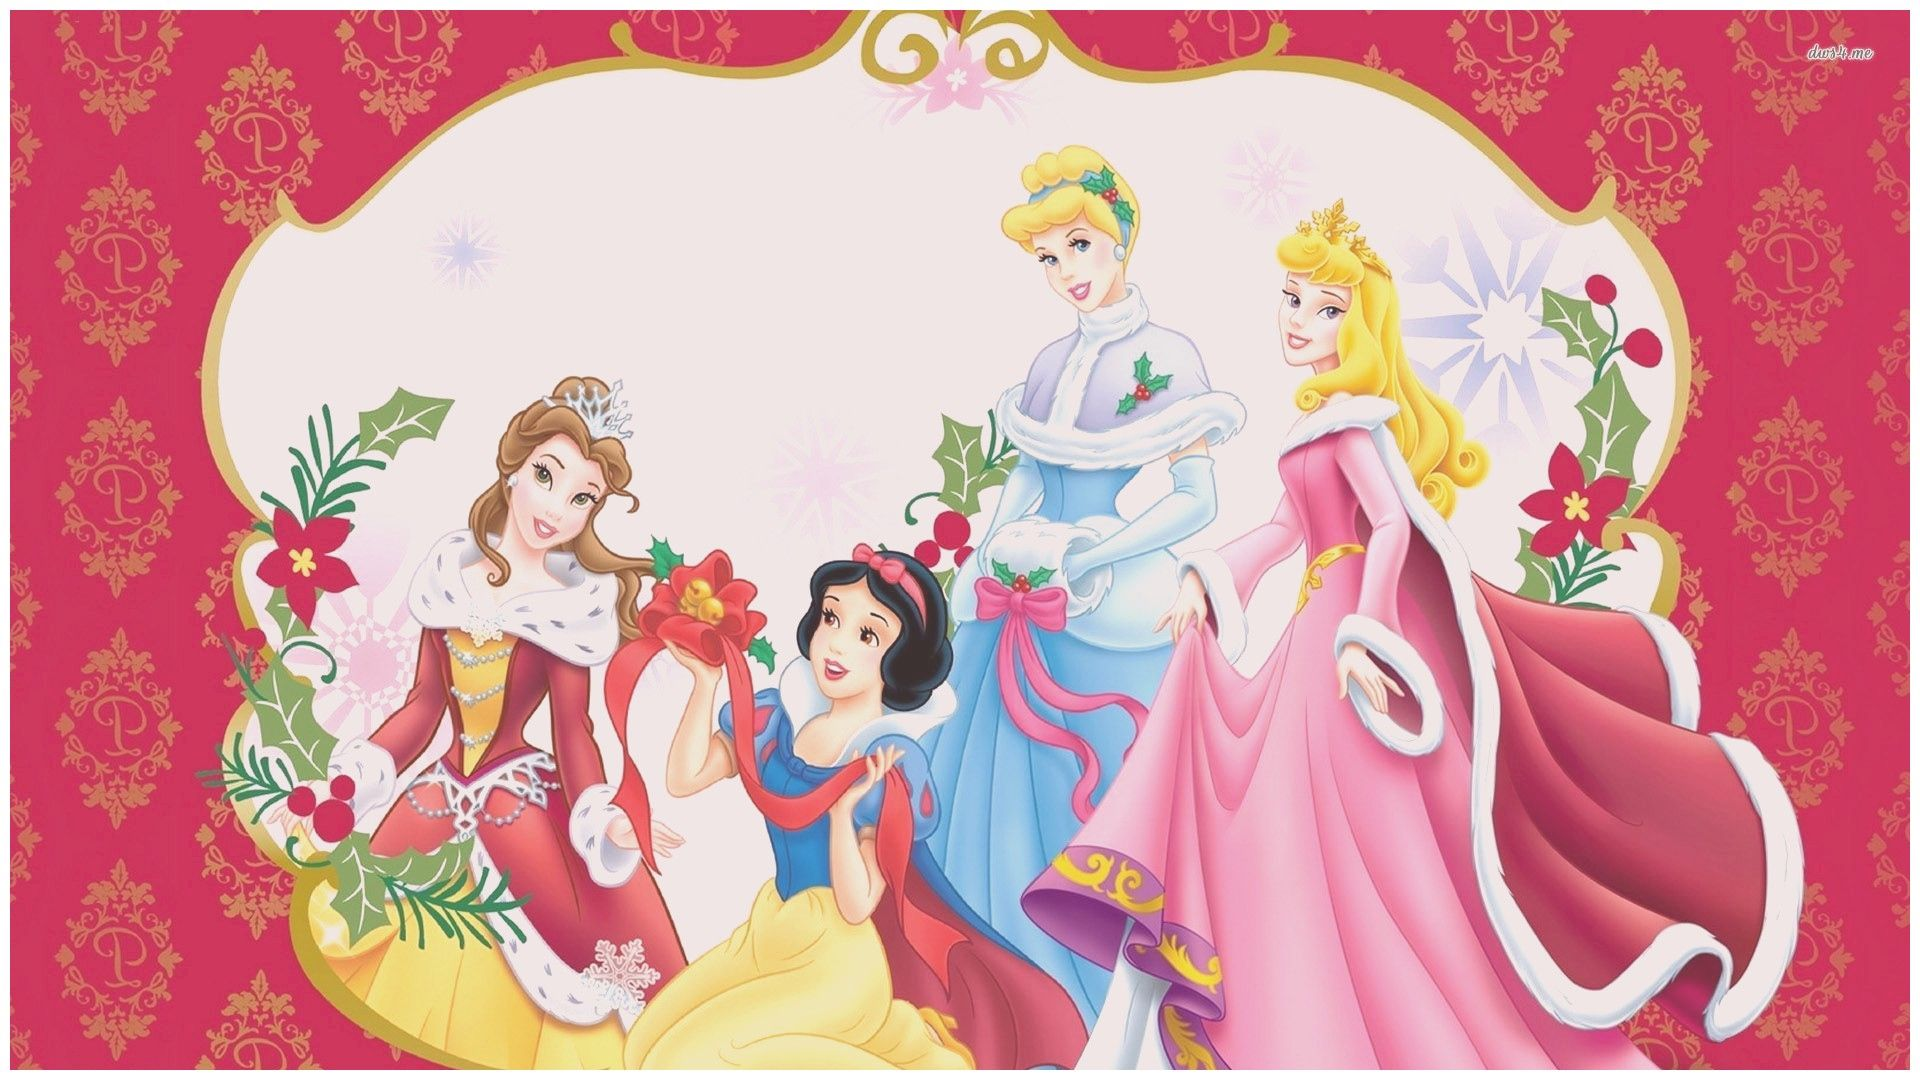 Disney Princess Wallpapers Free Download For Mobile Disney Princess Is Hd Wallpapers B In 2020 Disney Princess Wallpaper Princess Wallpaper Wallpaper Free Download